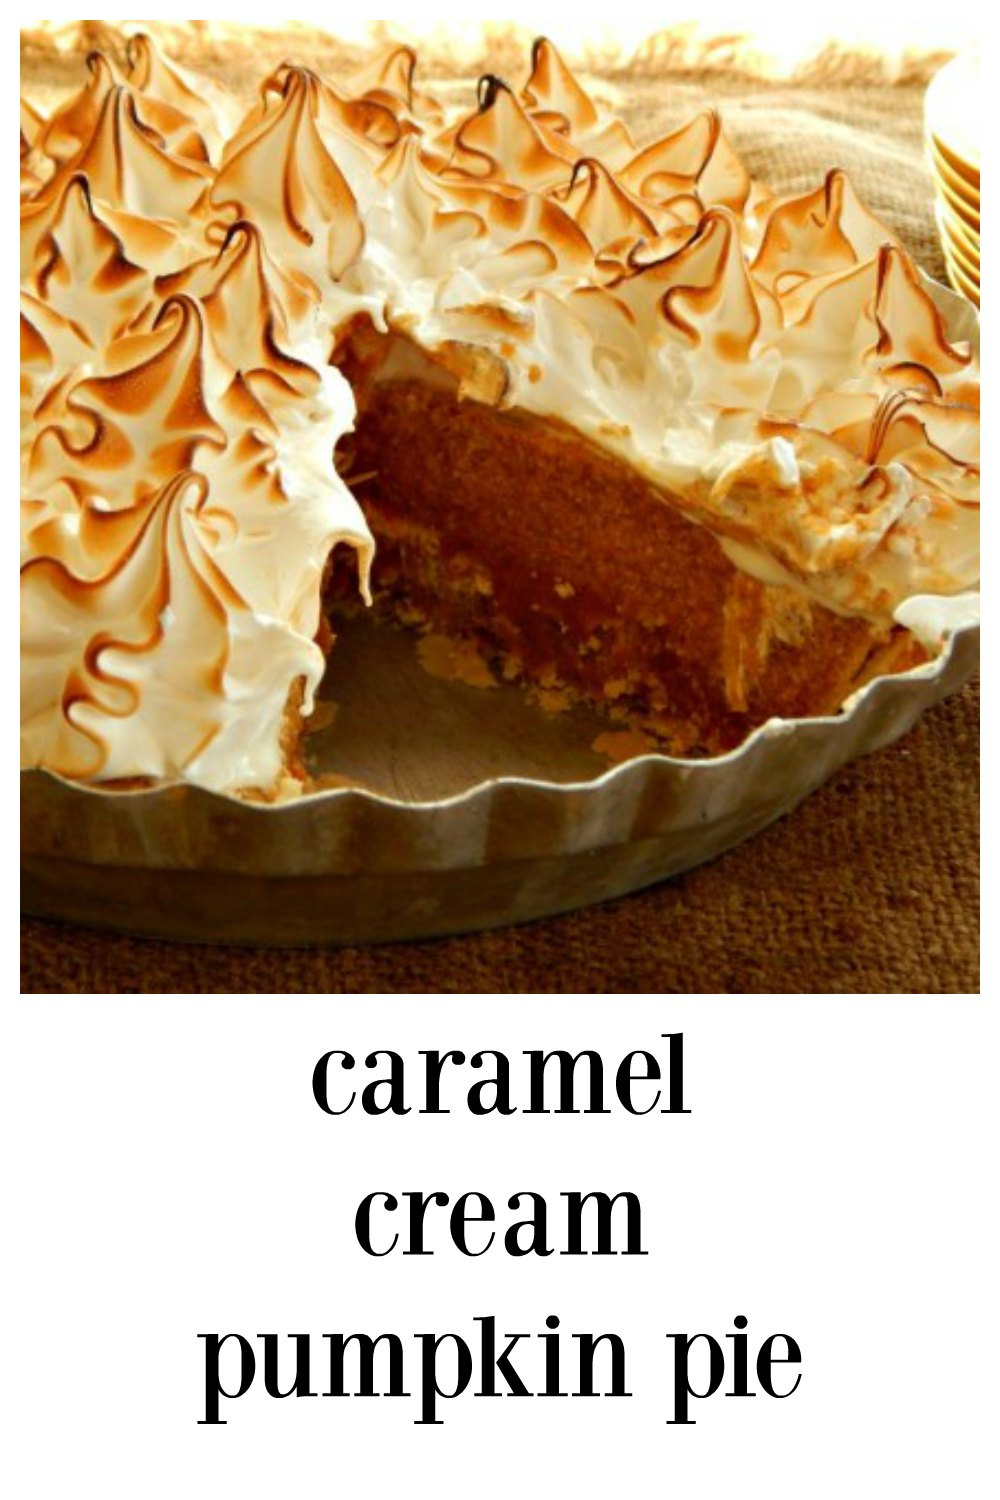 Caramel Cream Pumpkin Pie, On the bottom, rich caramel custard, on top cinnamony pumpkin mousse. All topped with an extravagant layer of toasted meringue. #PumkinPie #CaramelCreamPumpkinPie #2 LayerPumpkinPie #MoussePumpkinPie